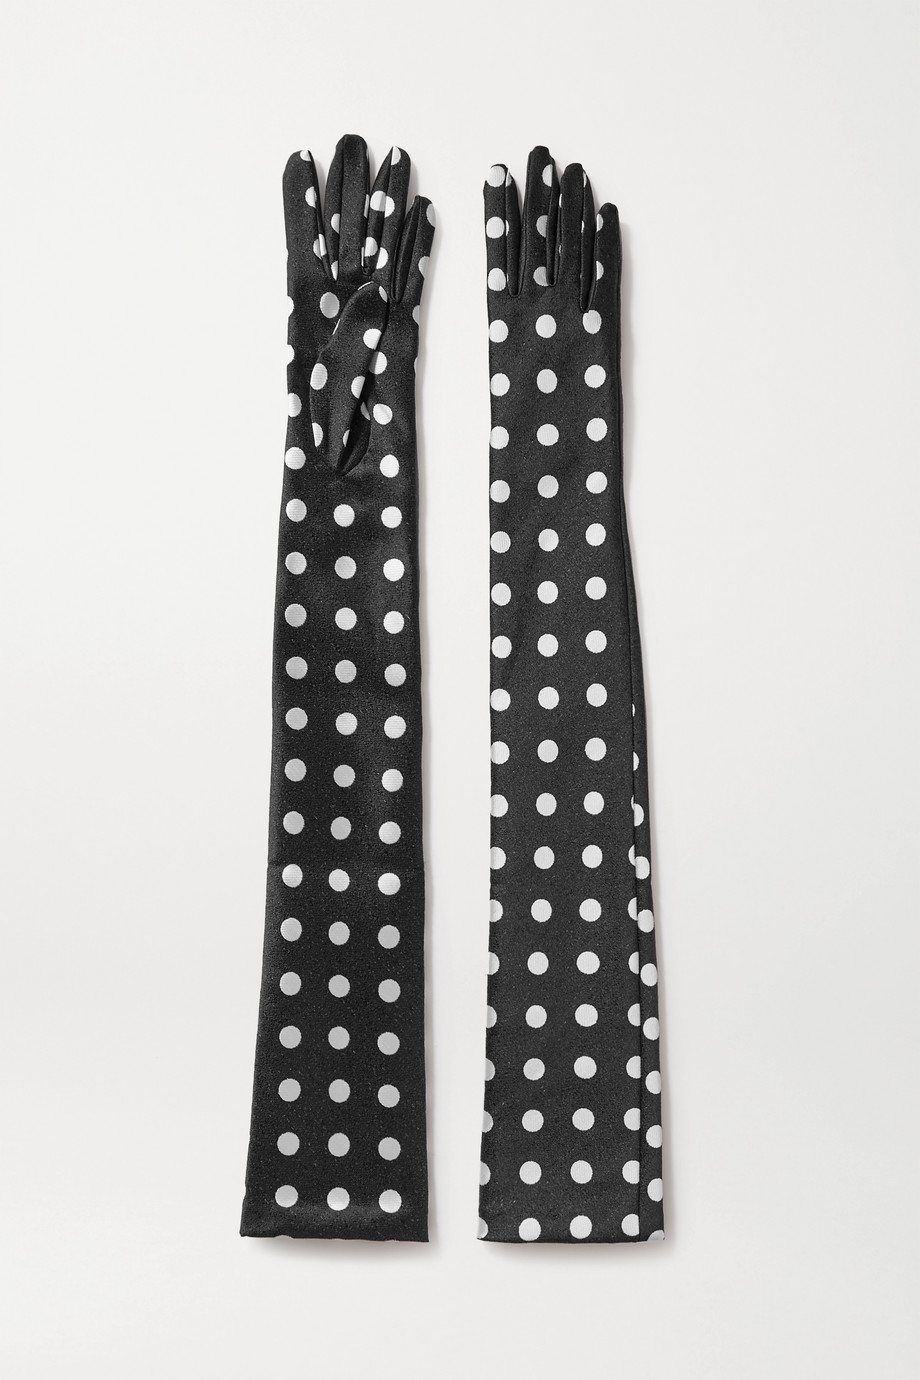 Emilia Wickstead Polka-dot satin-jacquard gloves